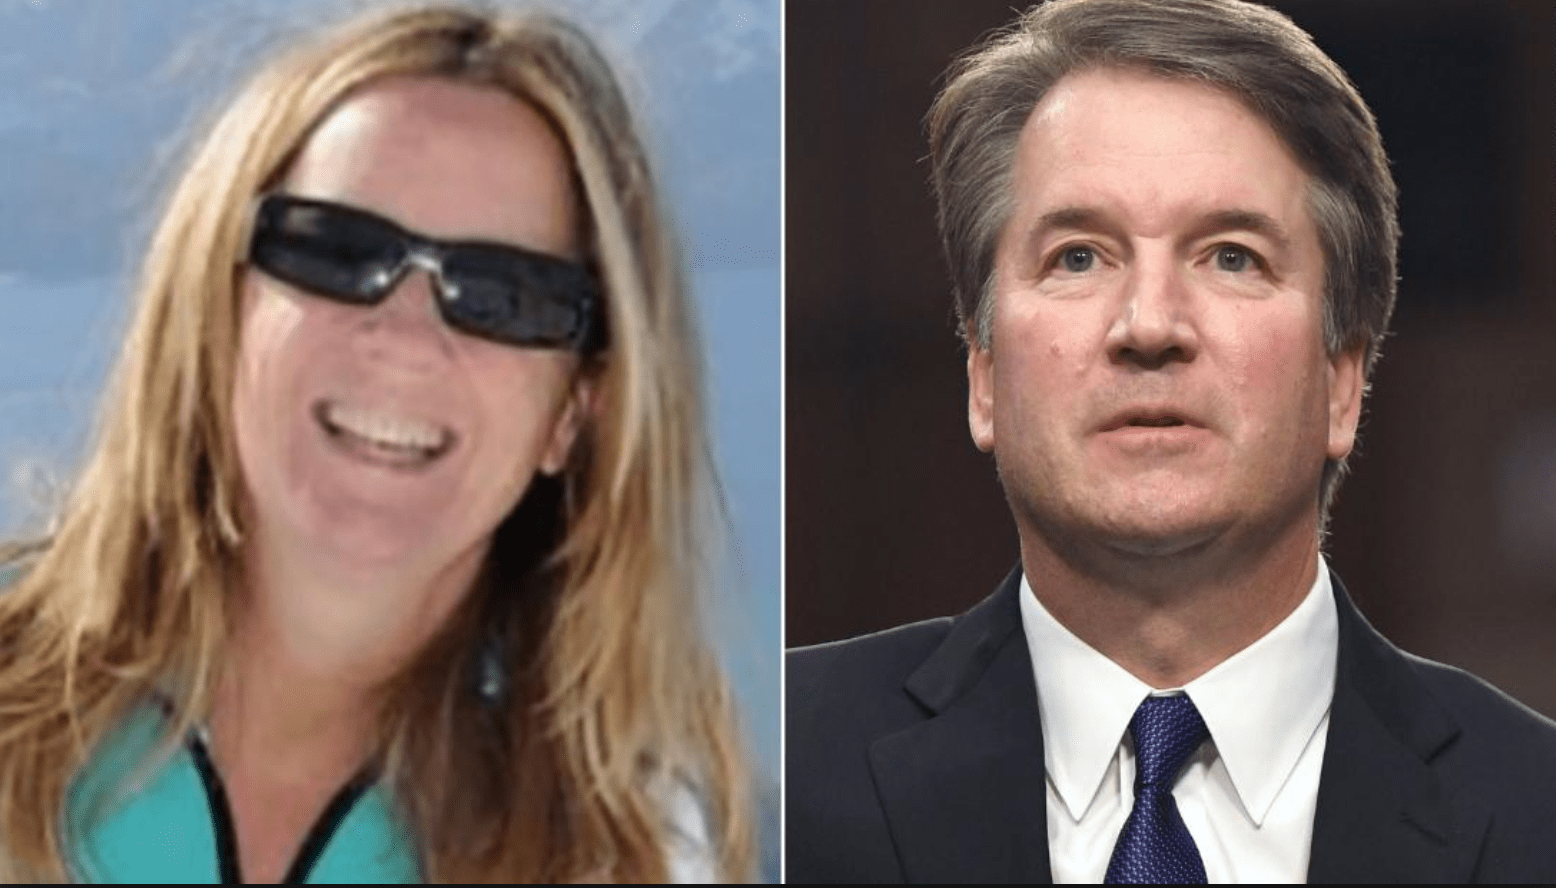 Here's what to expect from Thursday's Kavanaugh, Ford testimonies